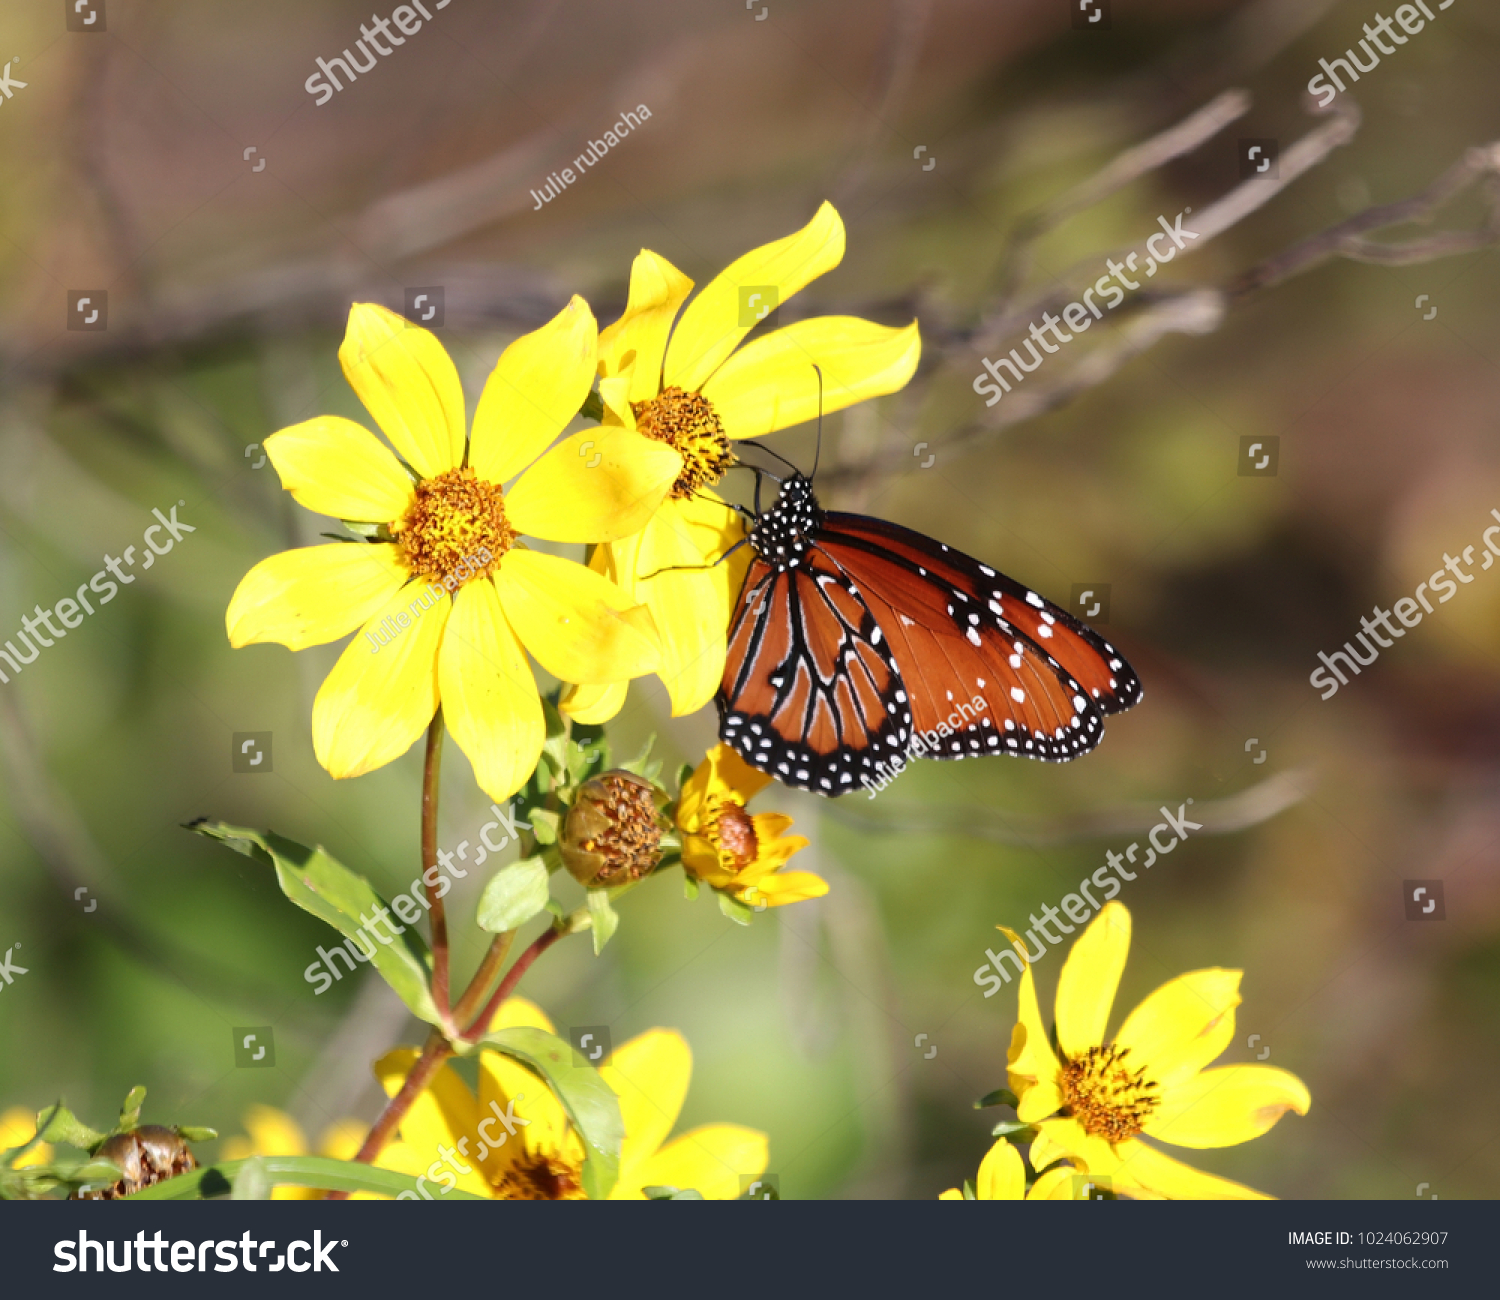 Queen Butterfly Danaus Gilippus On Yellow Flowers During Winter In